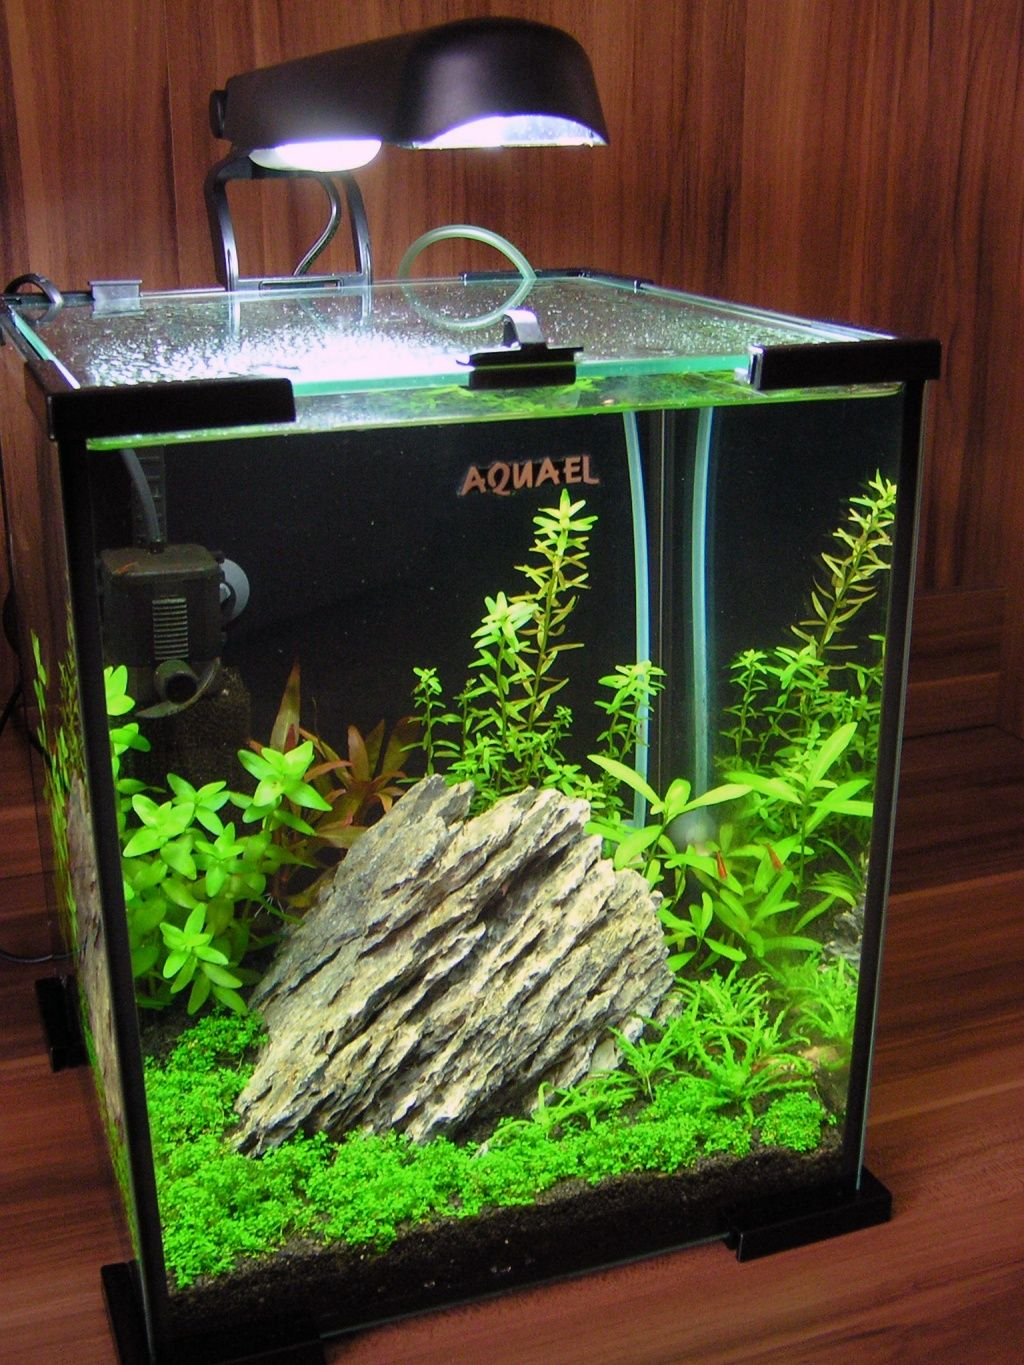 Small nano aquarium fish tank tropical - Aquael Shrimp Set 20l Nano Aquarium